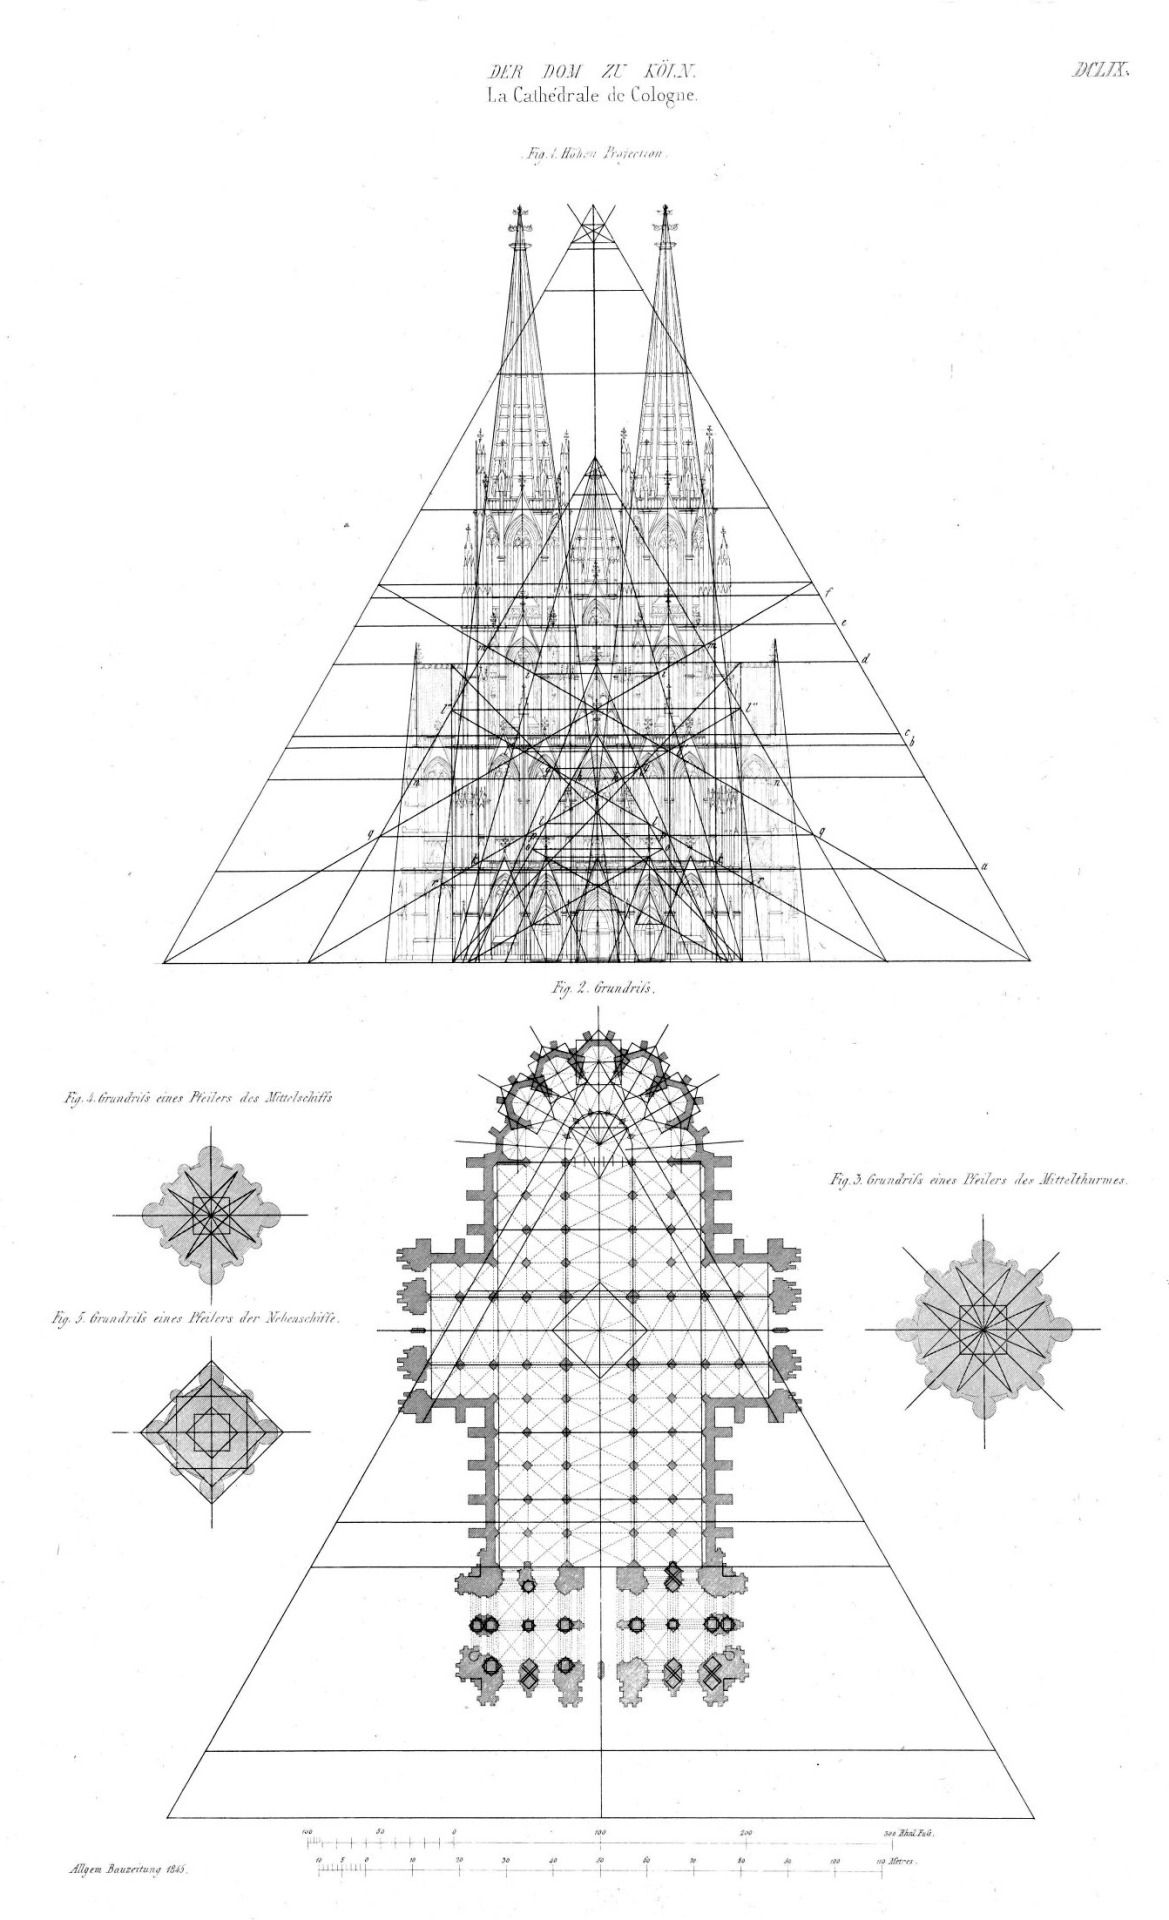 Elevation And Plan Of The Cathedral Cologne Arch Drawings